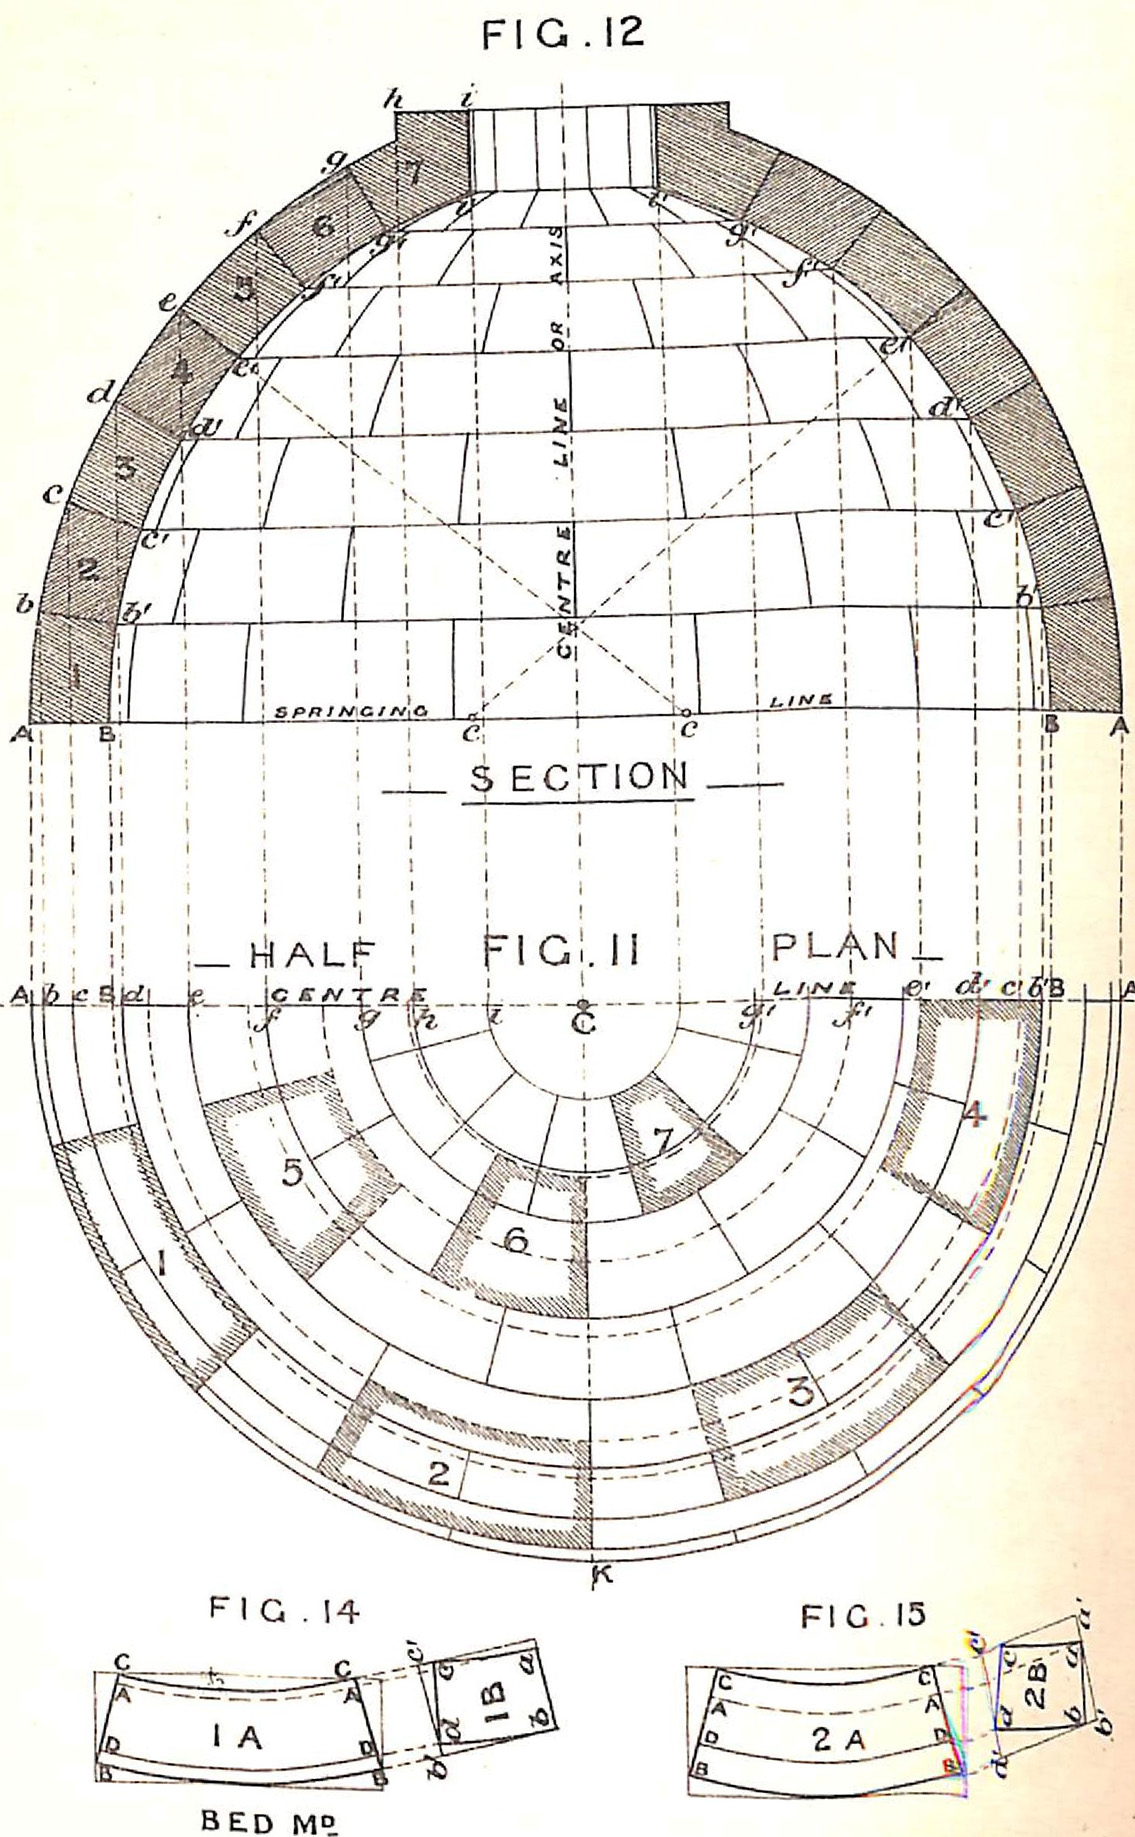 Diagram of a Dome